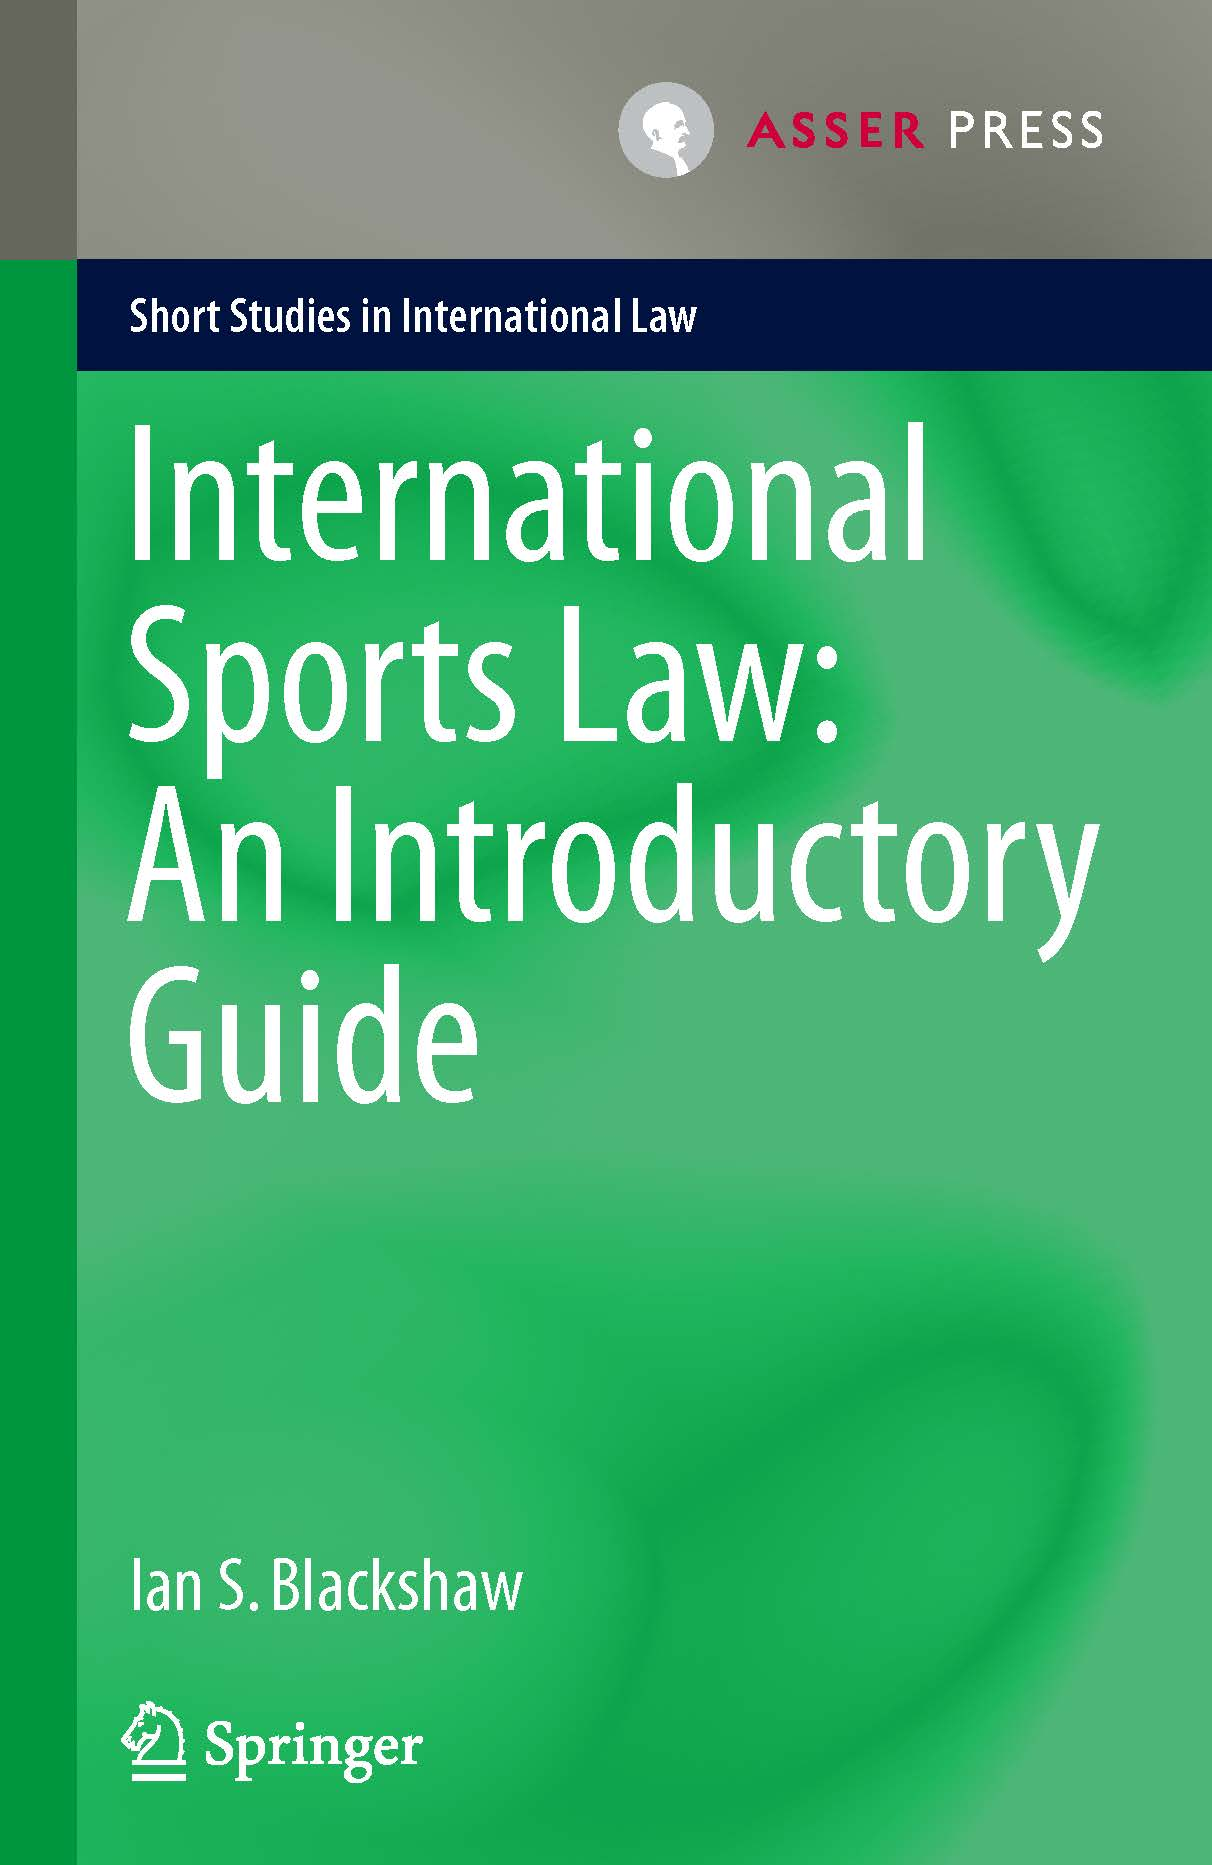 International Sports Law: An Introductory Guide